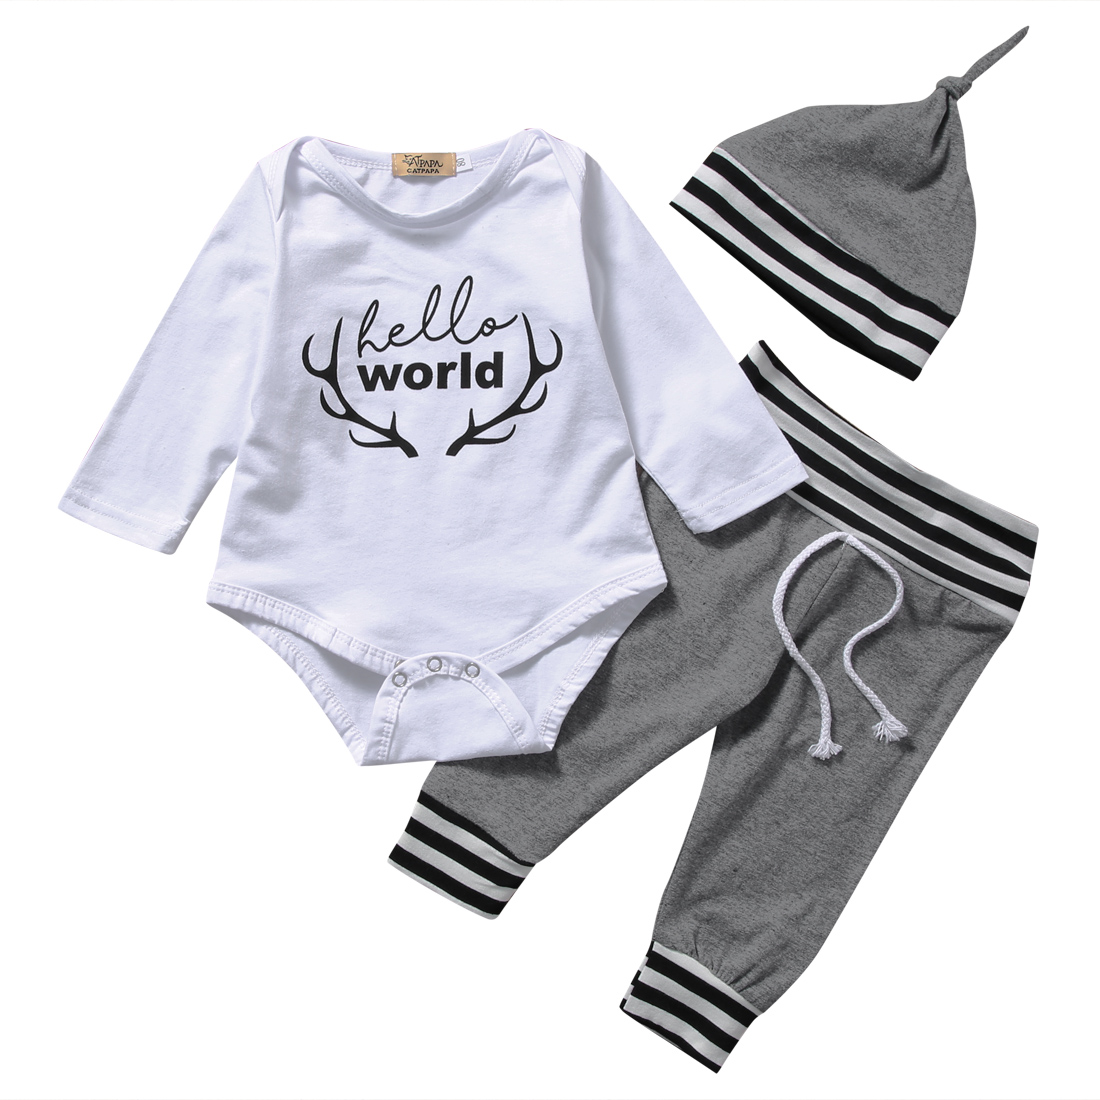 3pcs Newborn Infant Baby Boy Girl Cotton Romper Tops Long Pants Hat Outfits Clothes Set